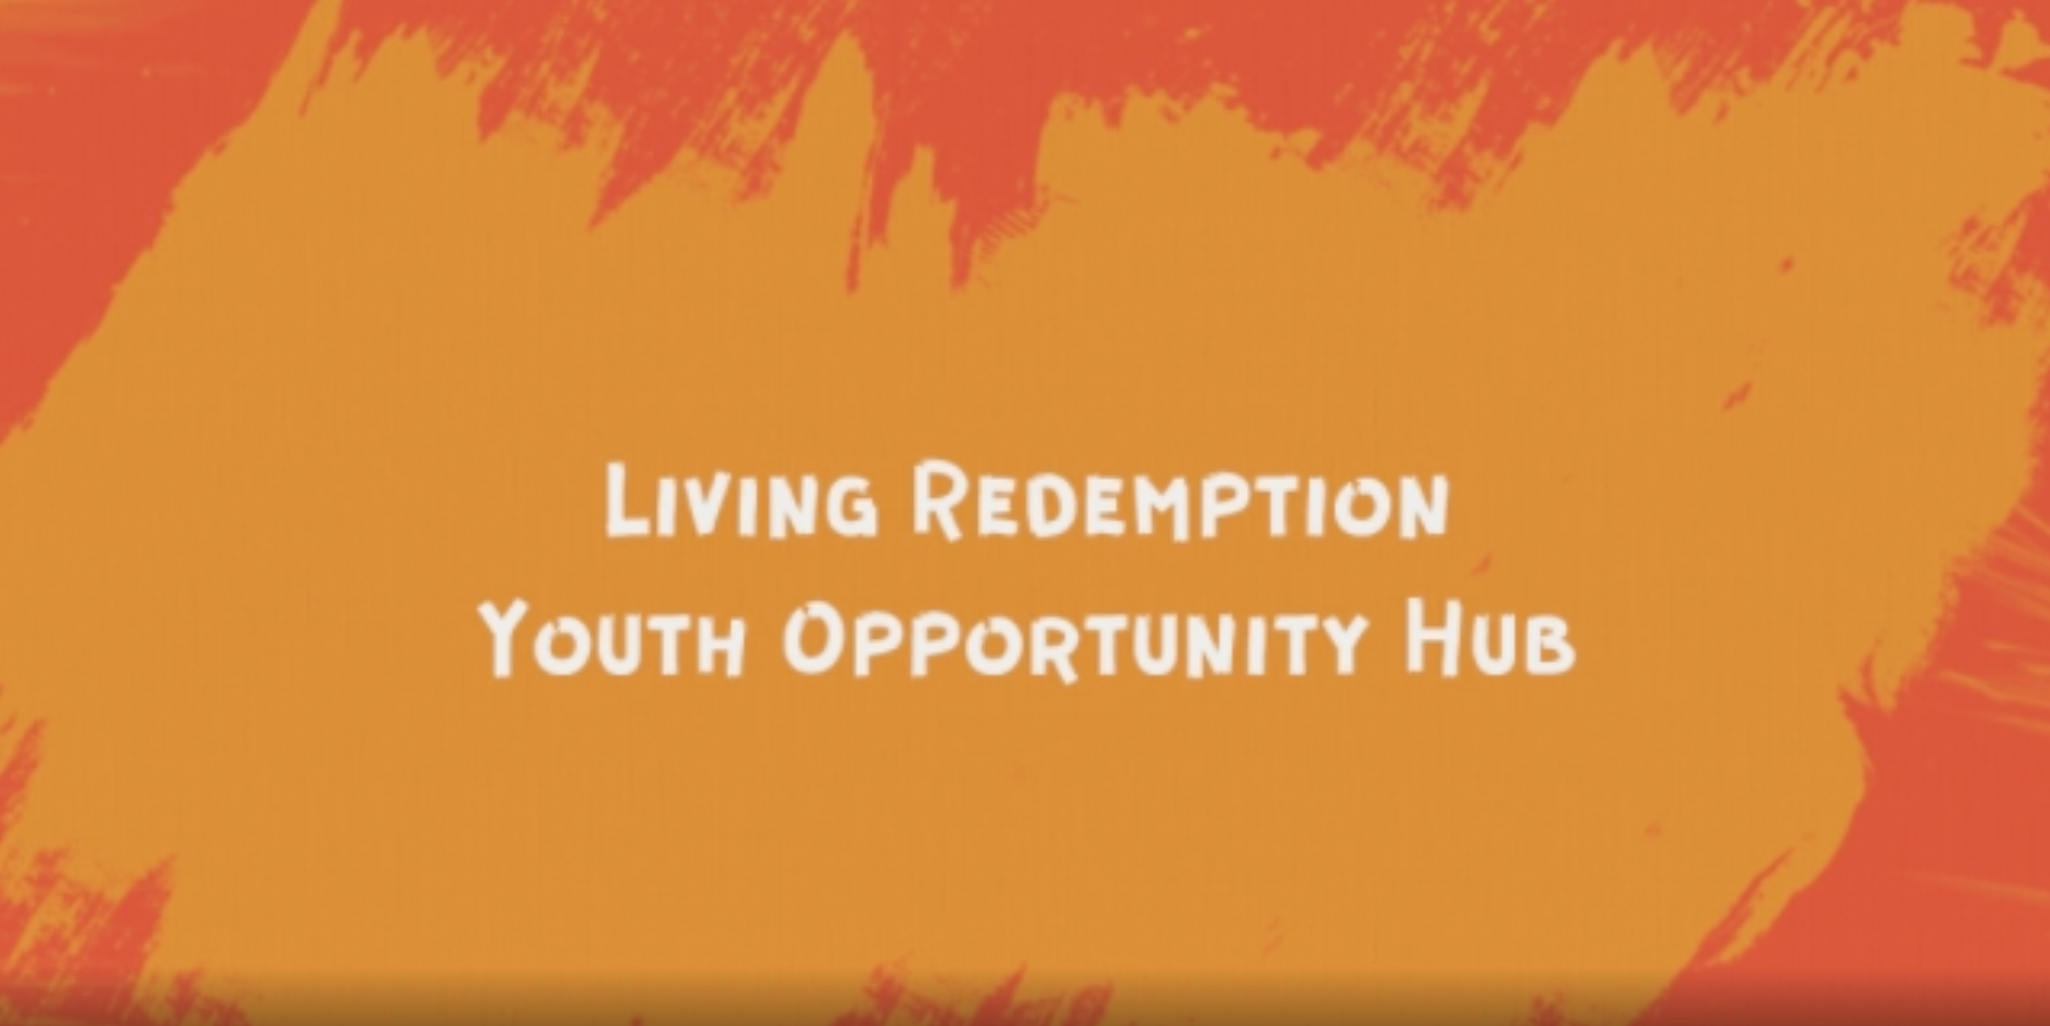 Living-Redemption-Youth-Opportunity-Hub-Year-in-Review-2018 | Screenshot